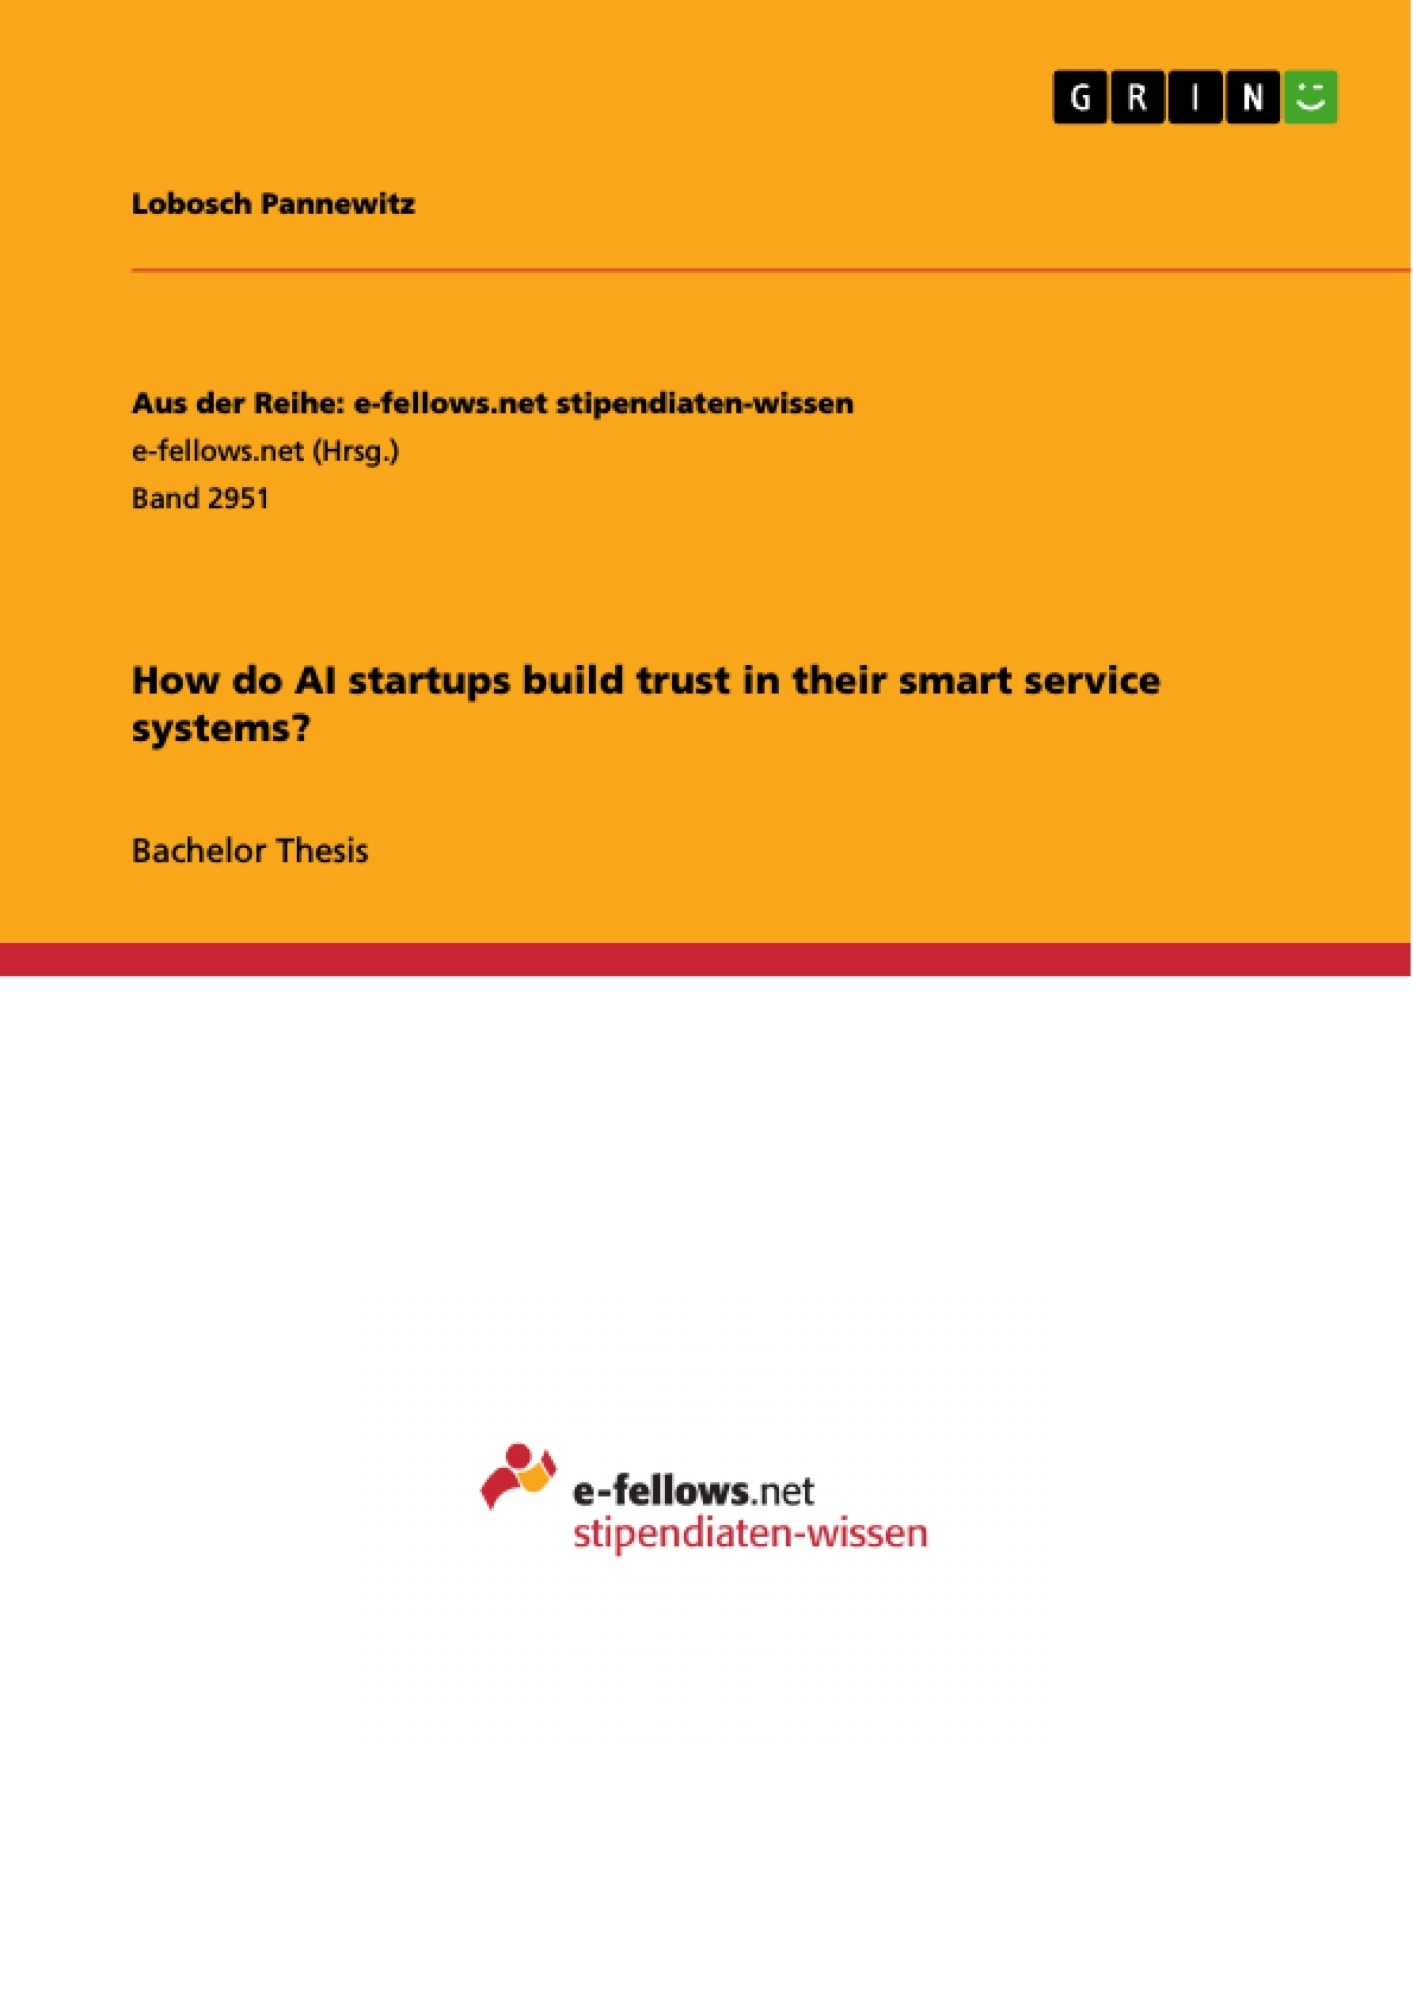 Title: How do AI startups build trust in their smart service systems?